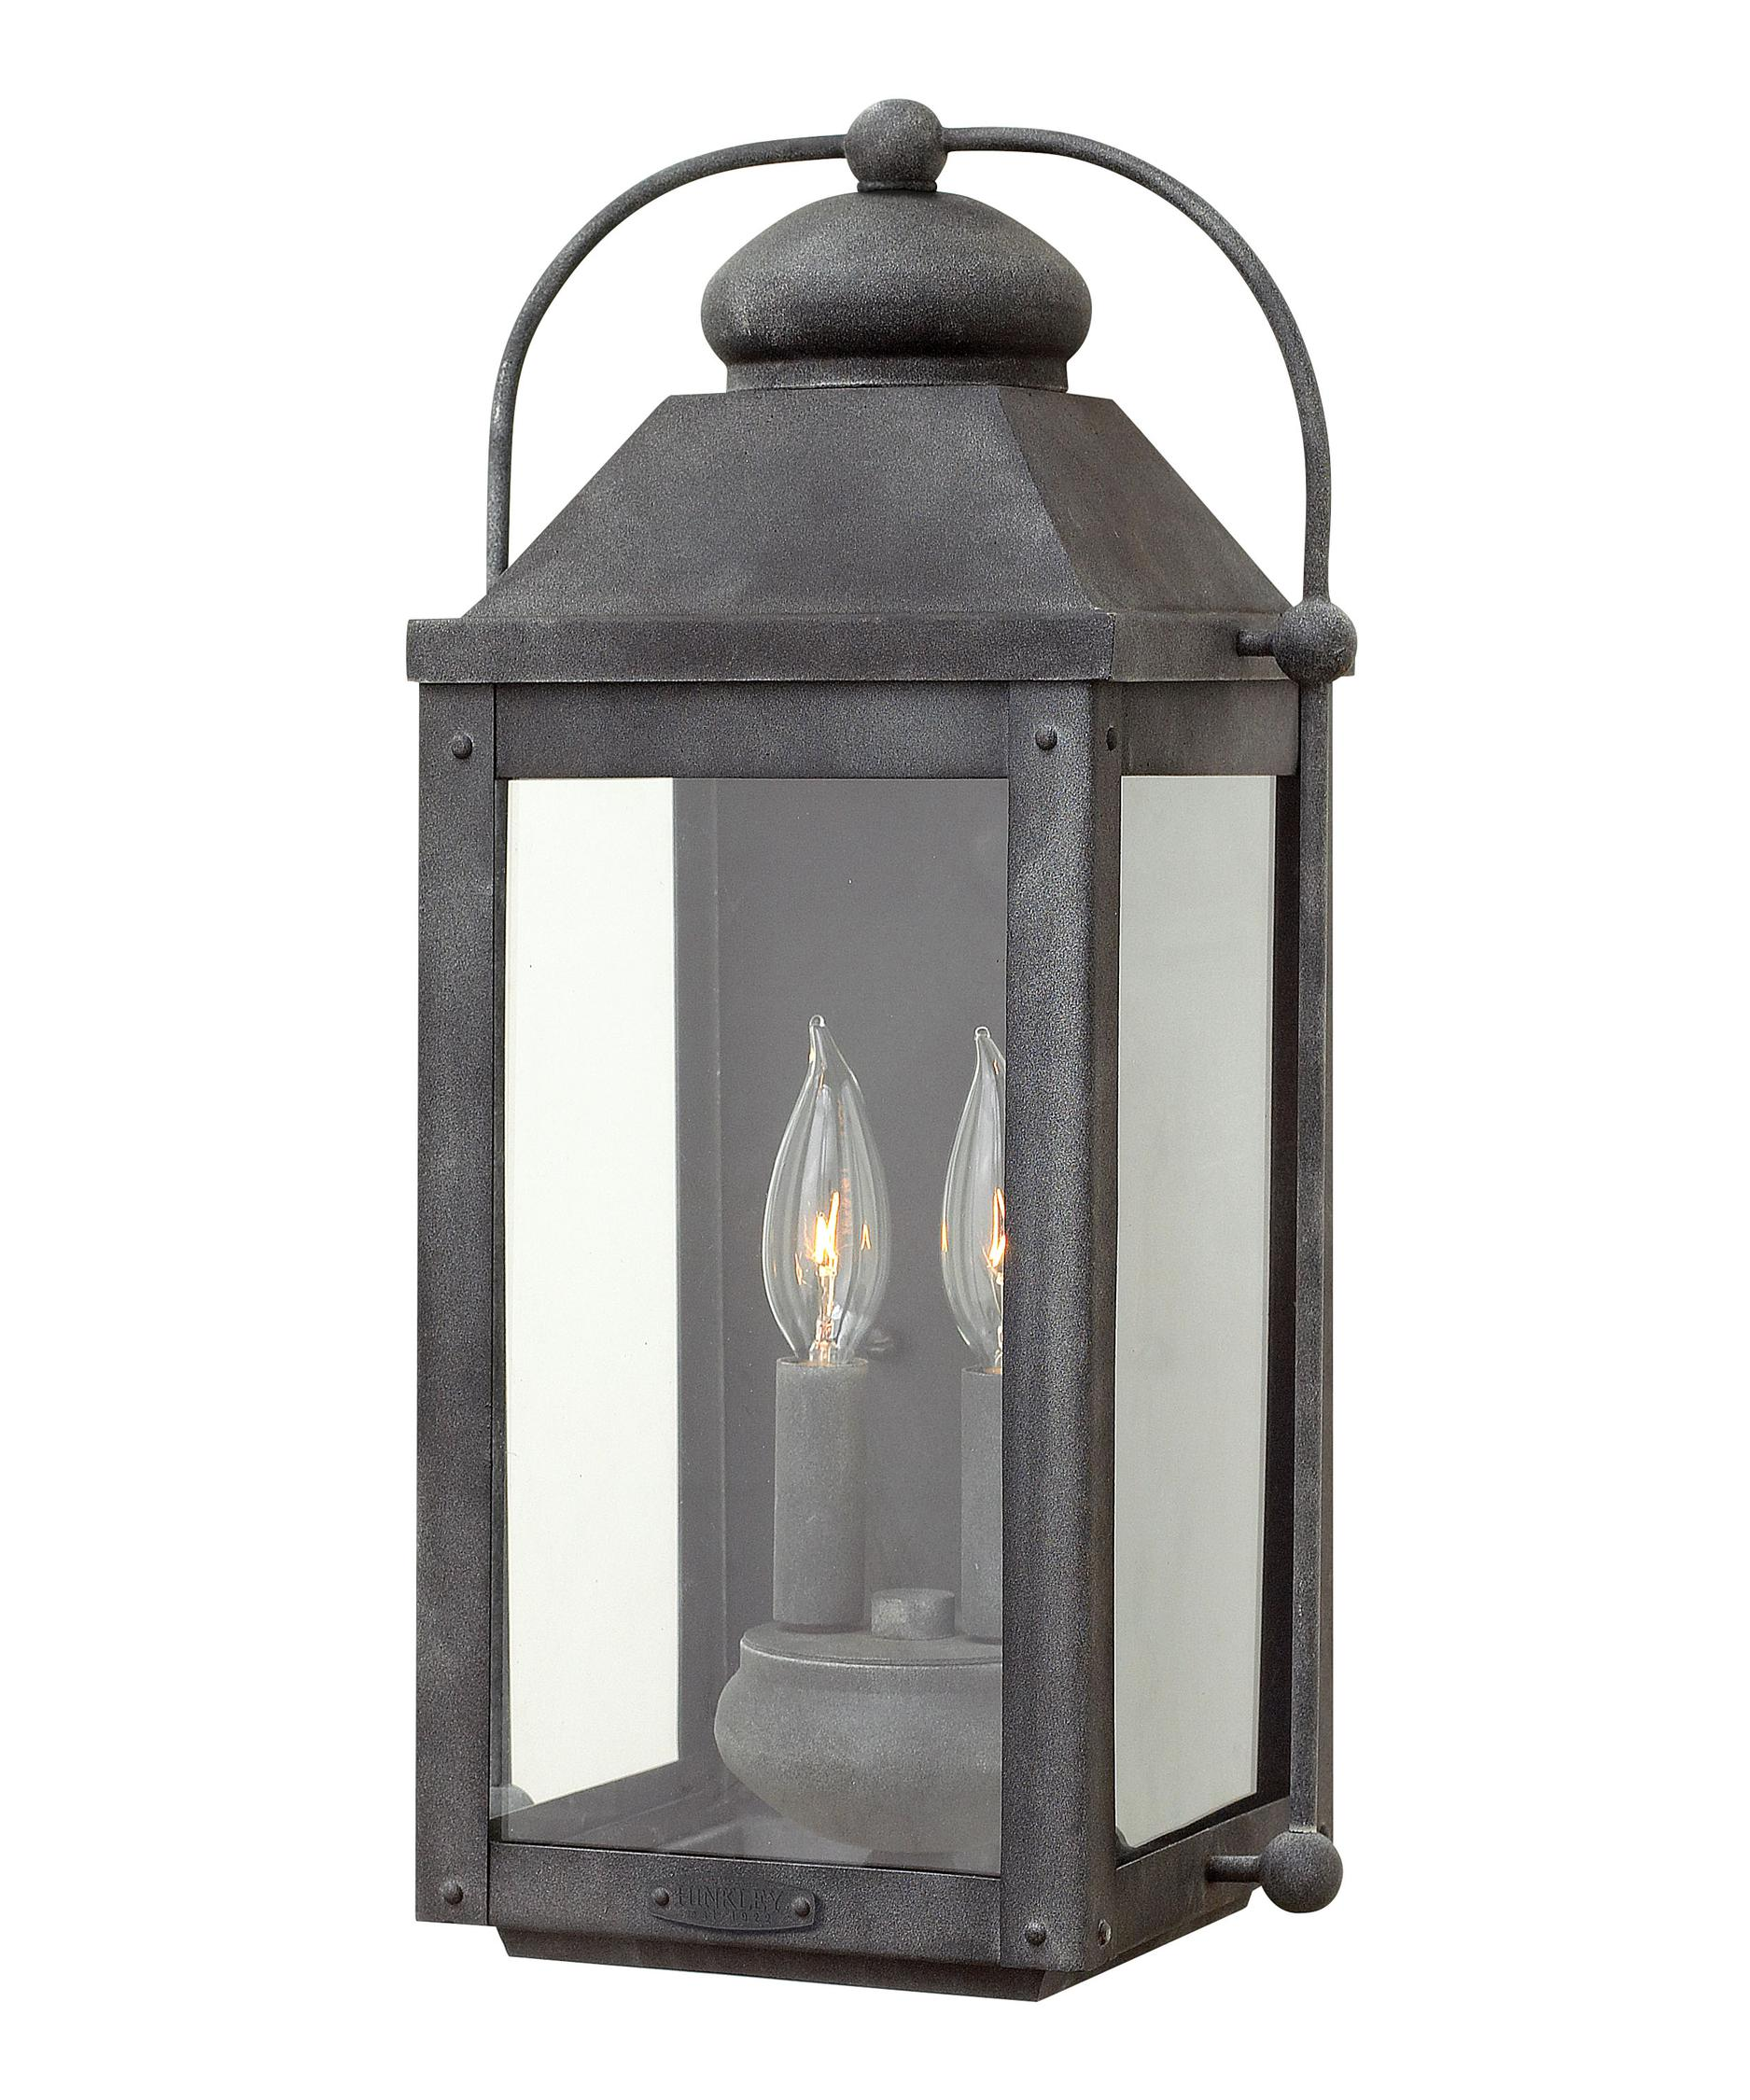 Anchorage 9 Inch Wide 2 Light Outdoor Wall Light